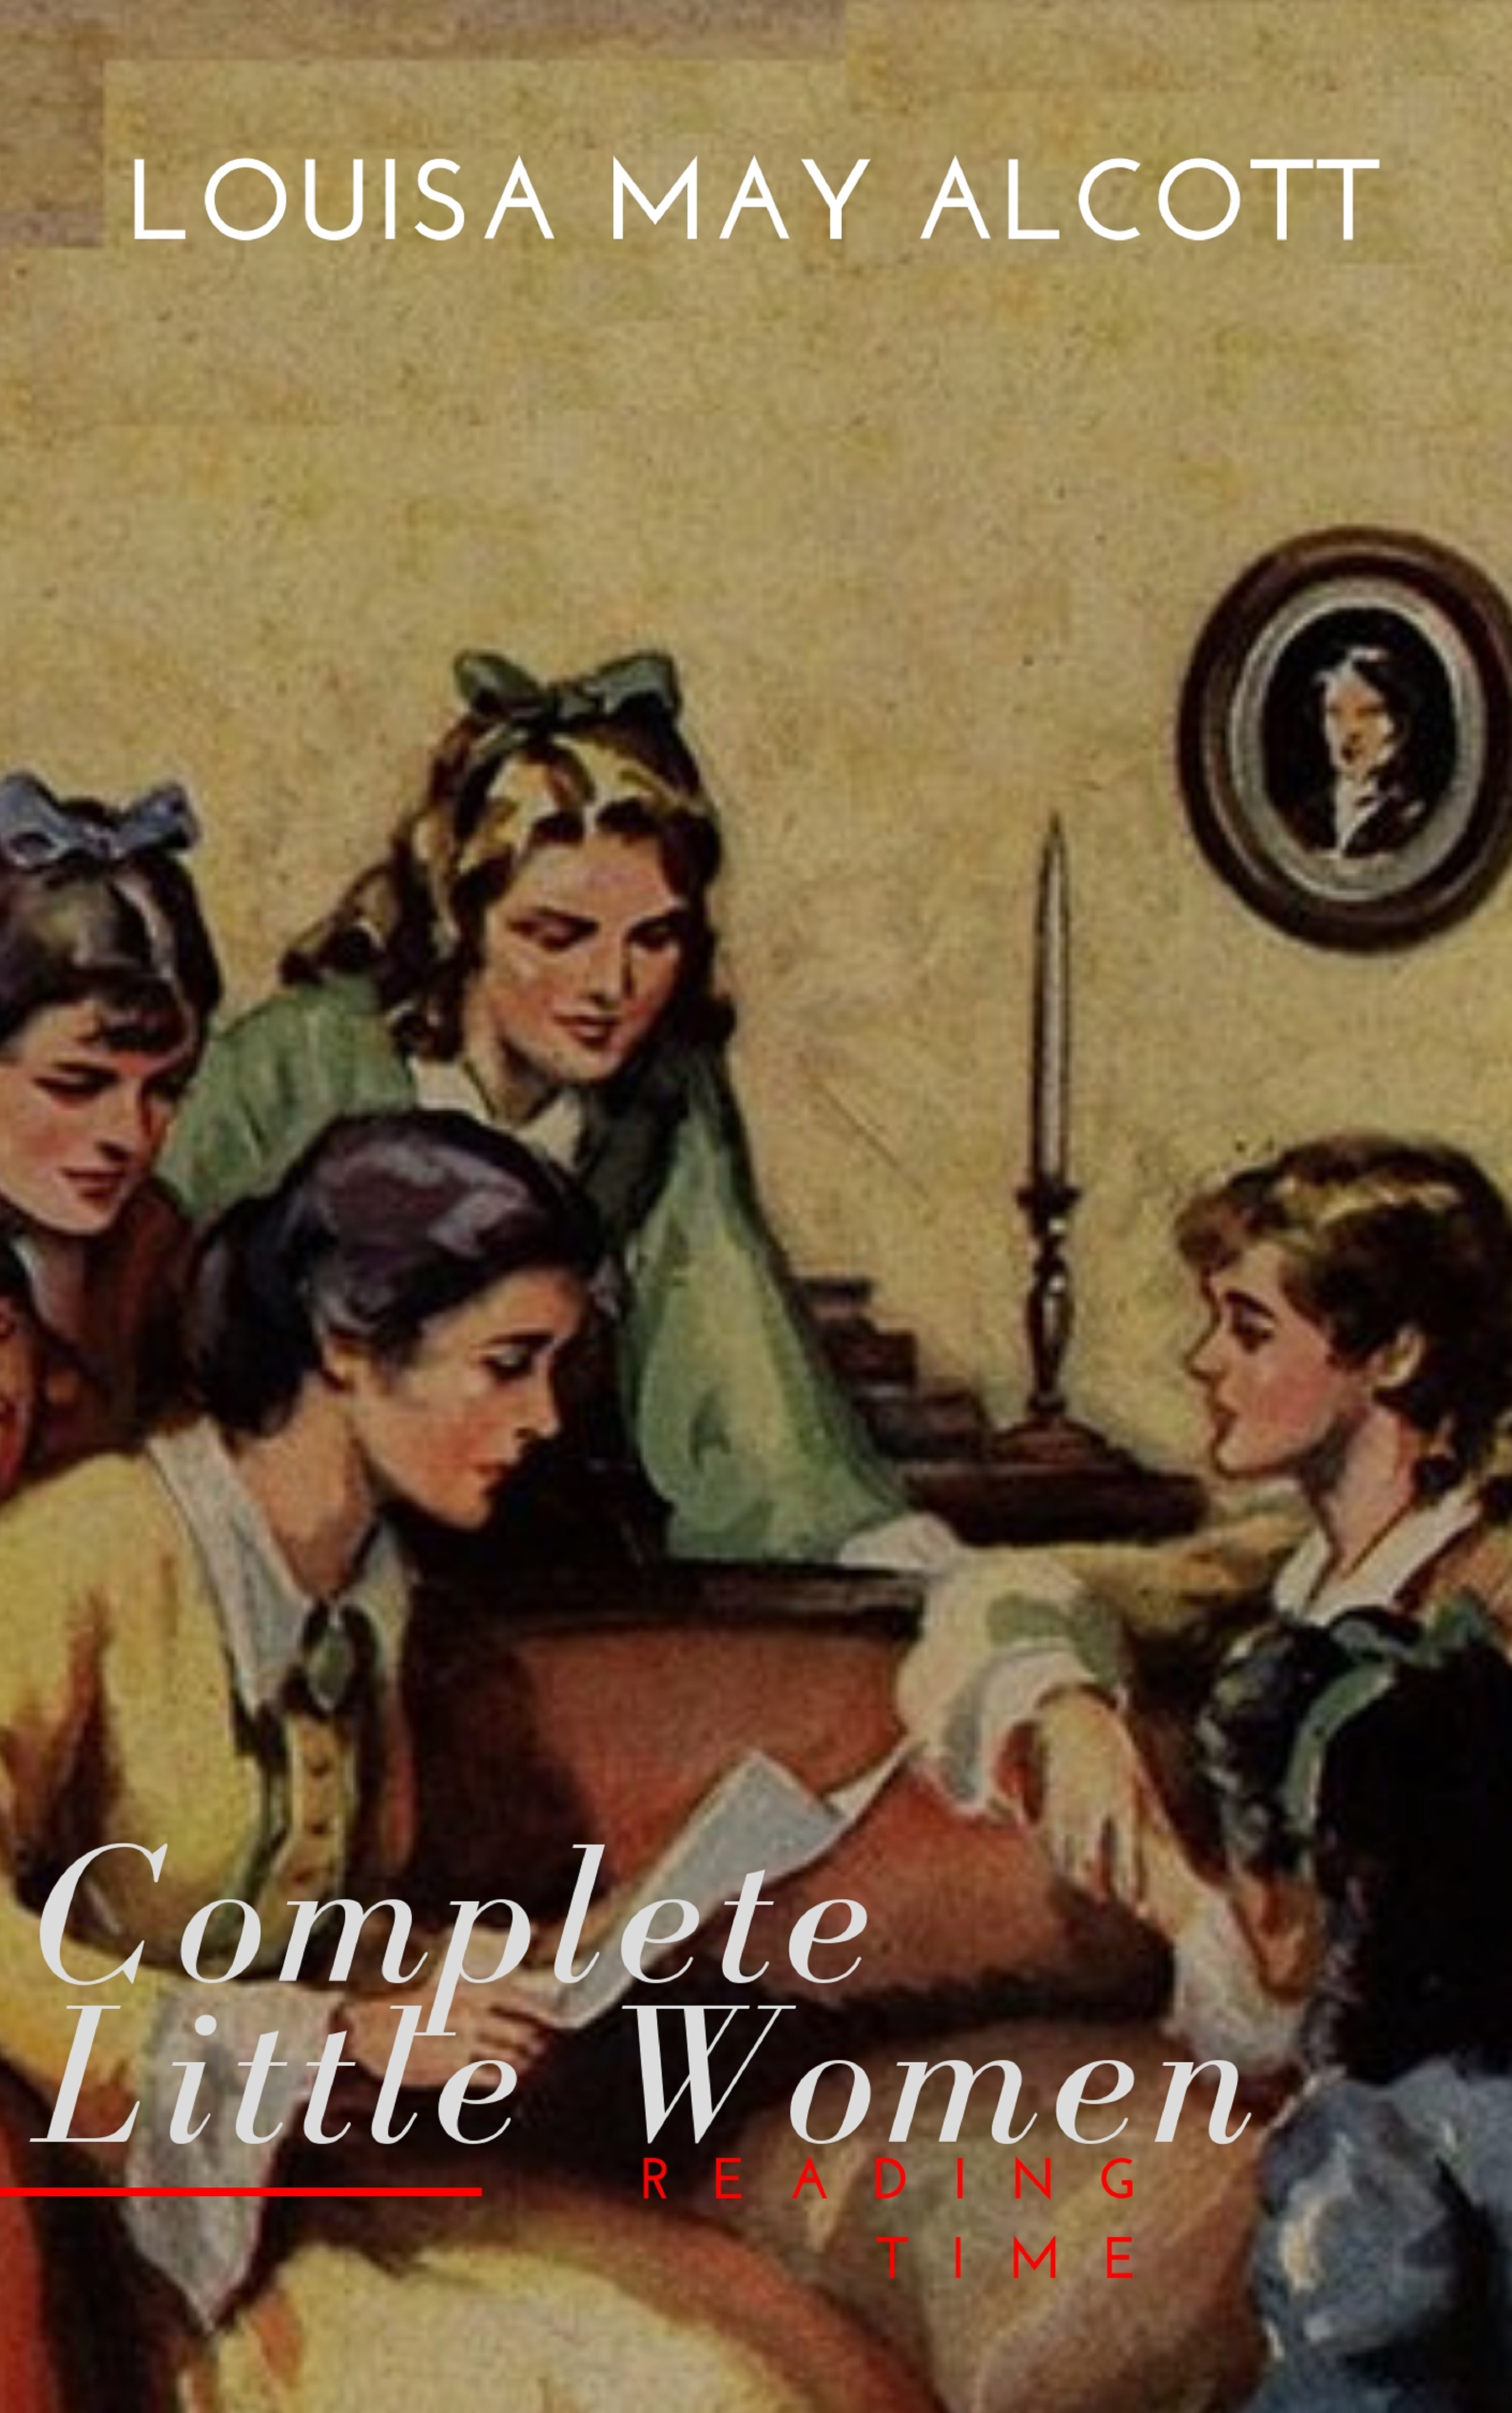 Reading Time The Complete Little Women: Little Women, Good Wives, Little Men, Jo's Boys little women cd